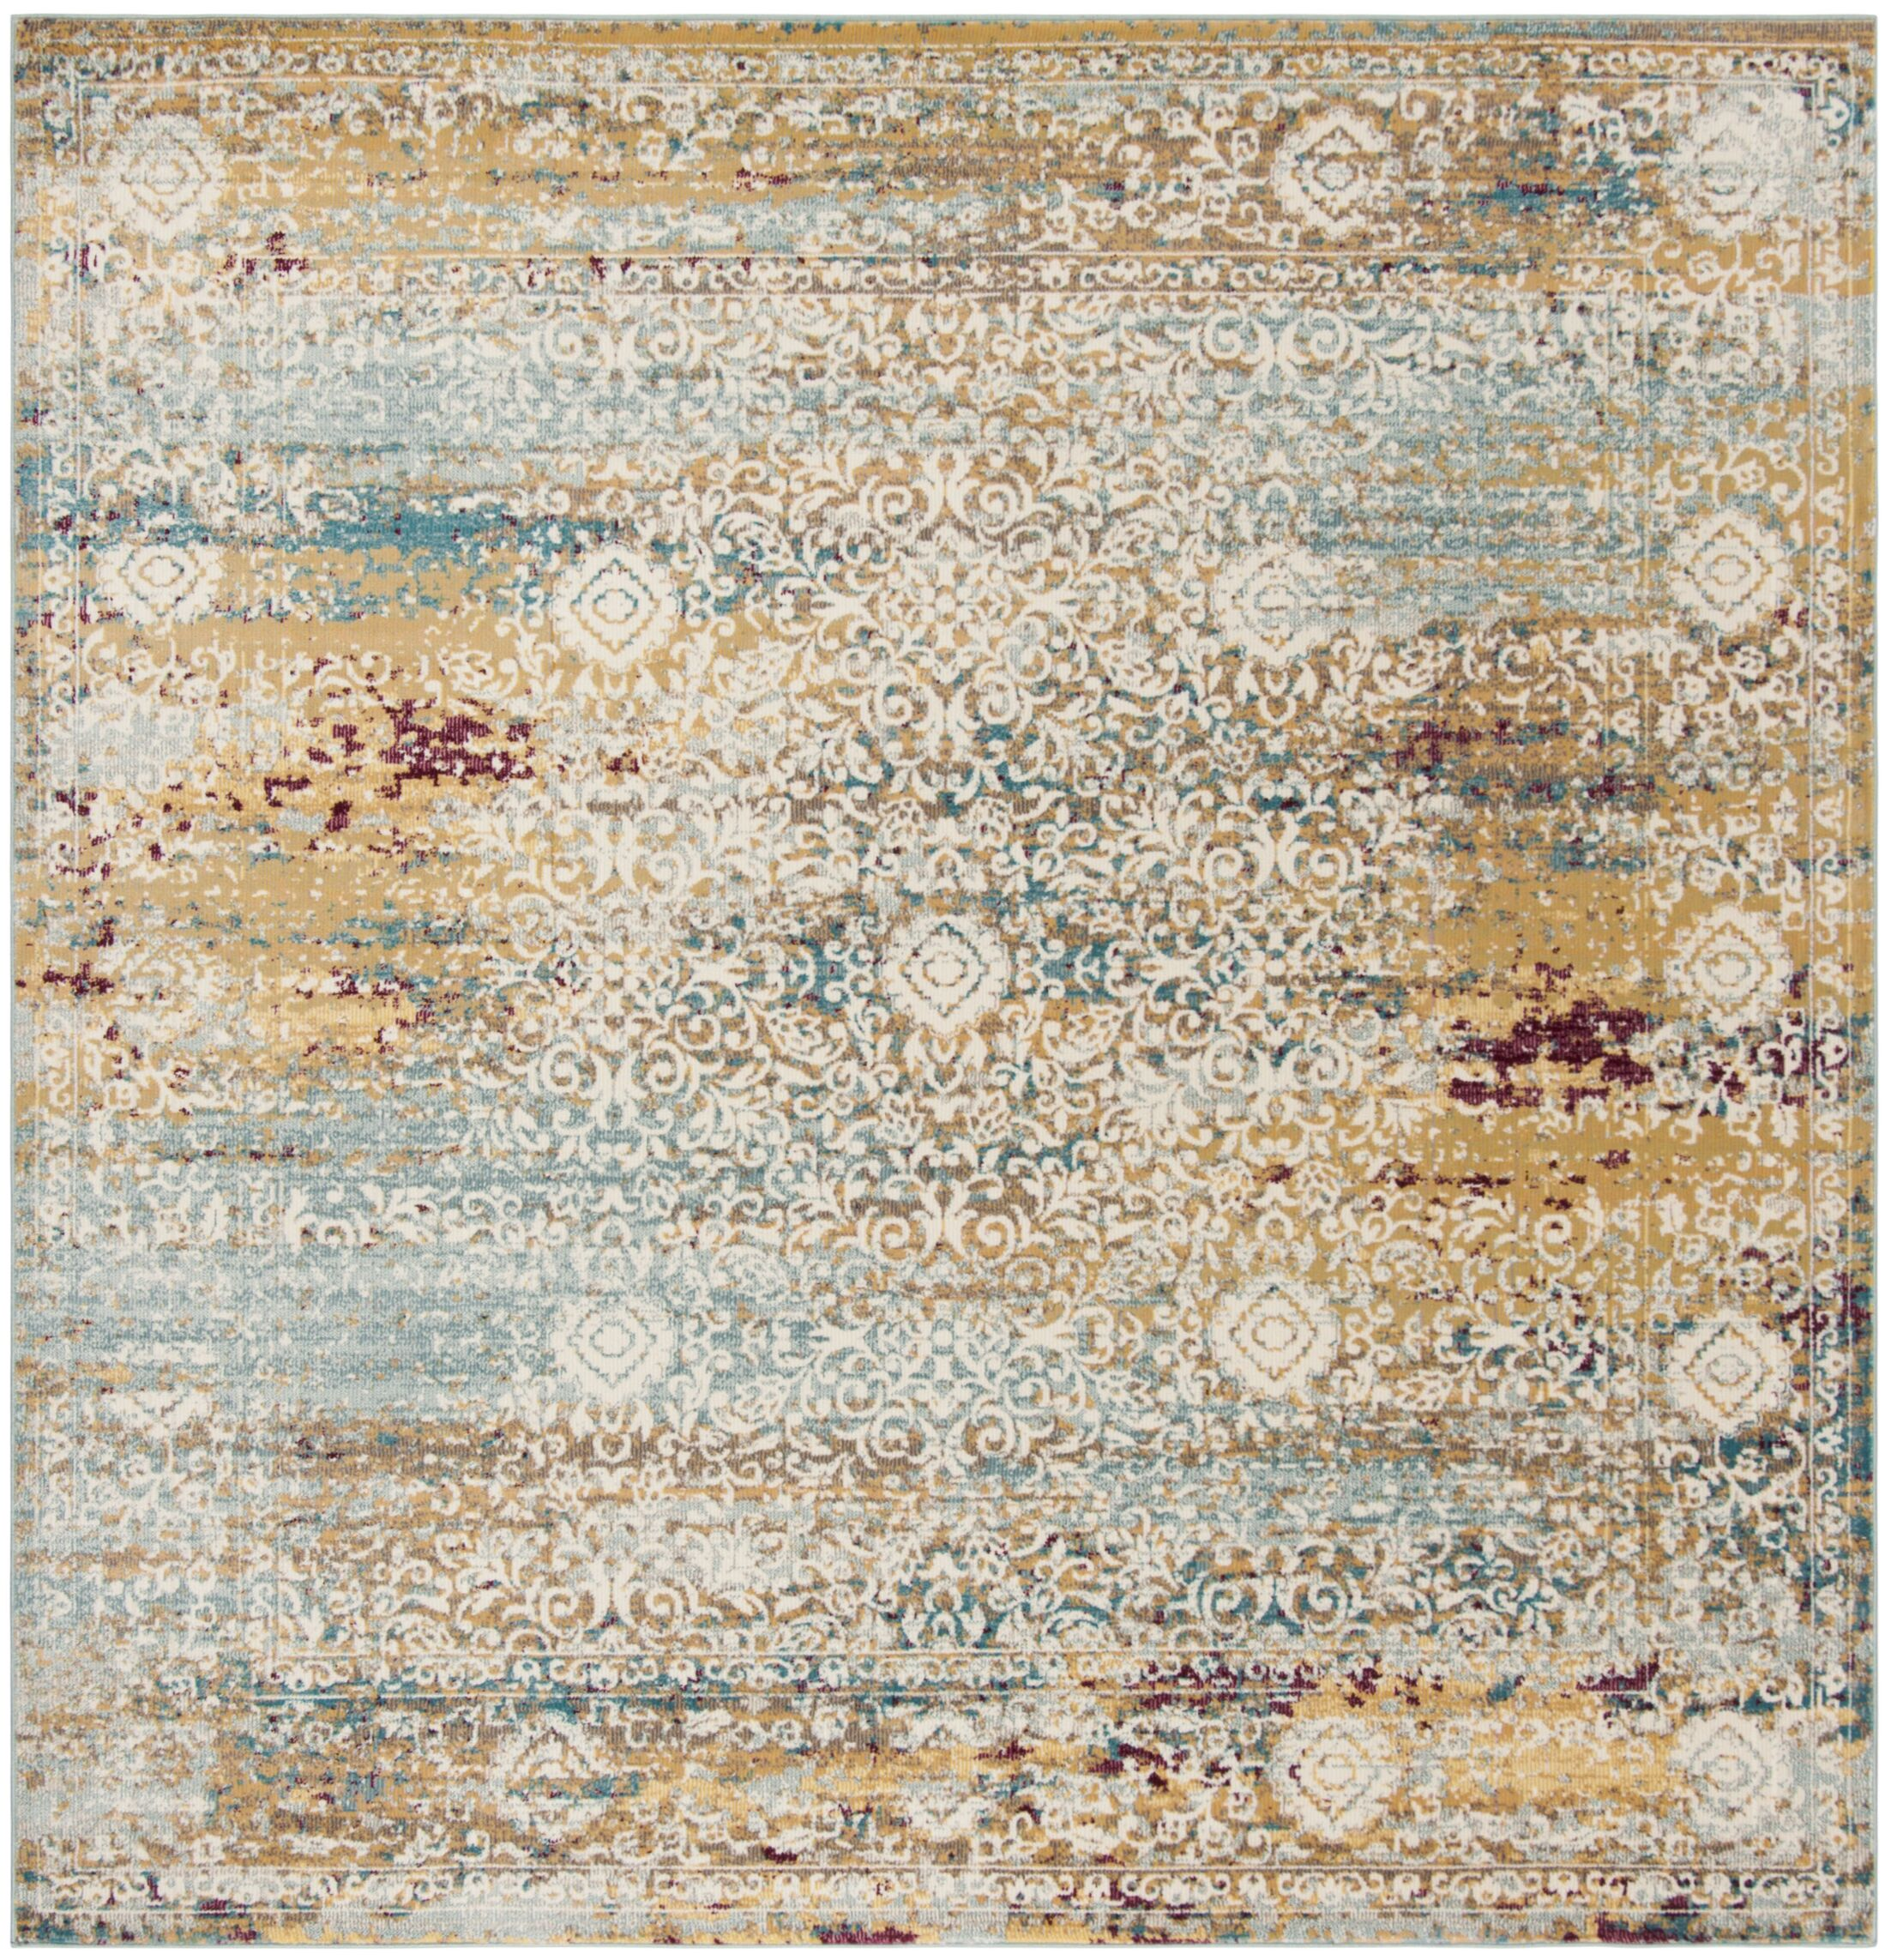 Monserrat Yellow Area Rug Rug Size: Square 6'5